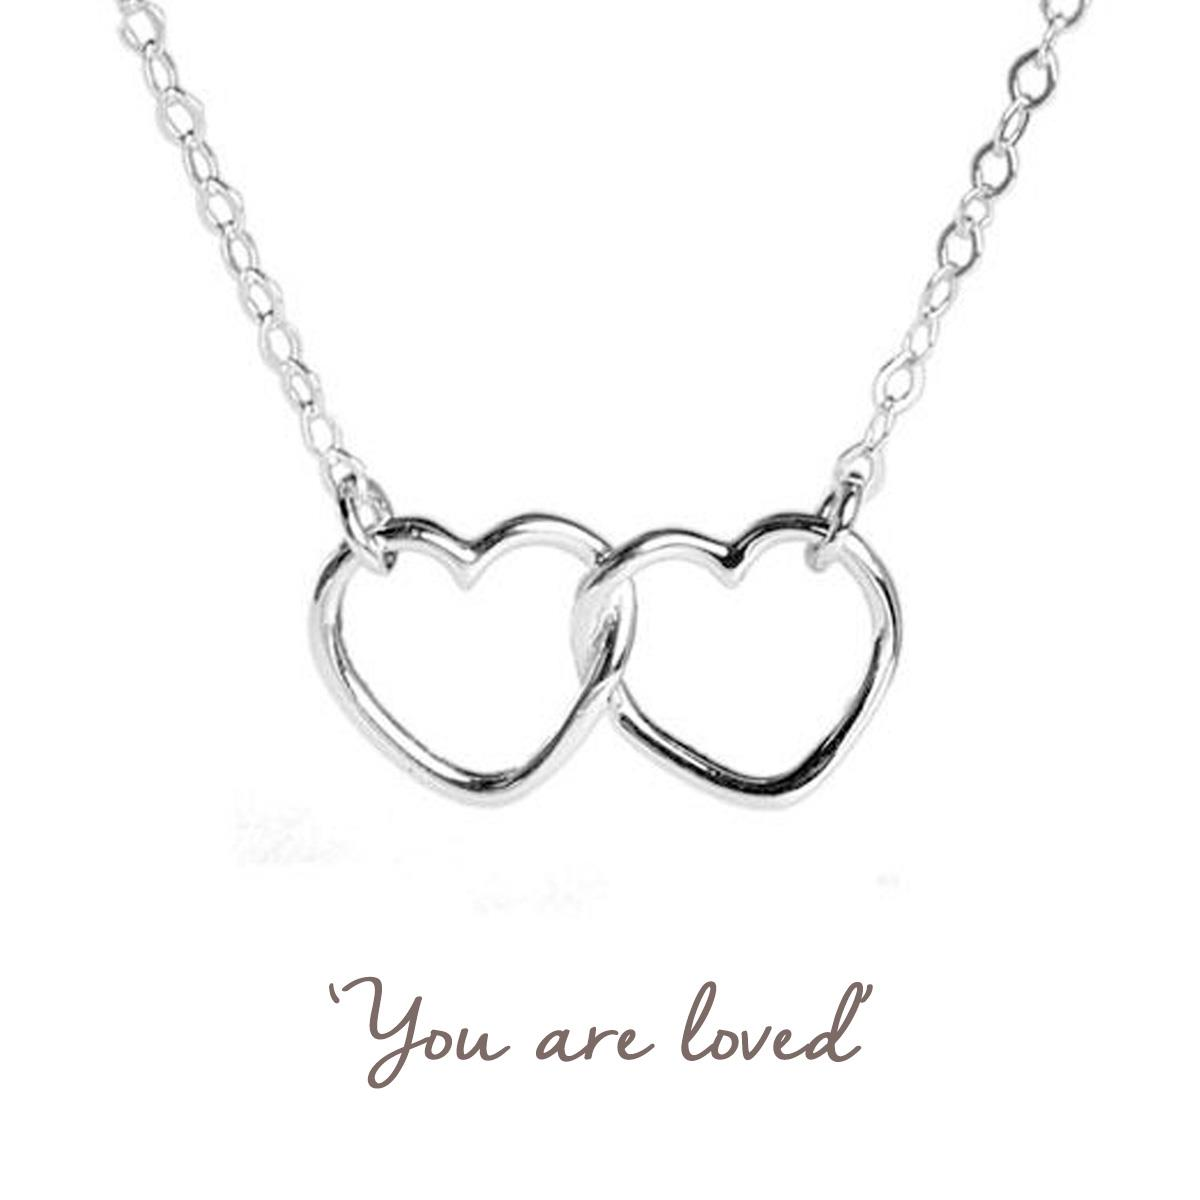 linked hearts valentines necklace